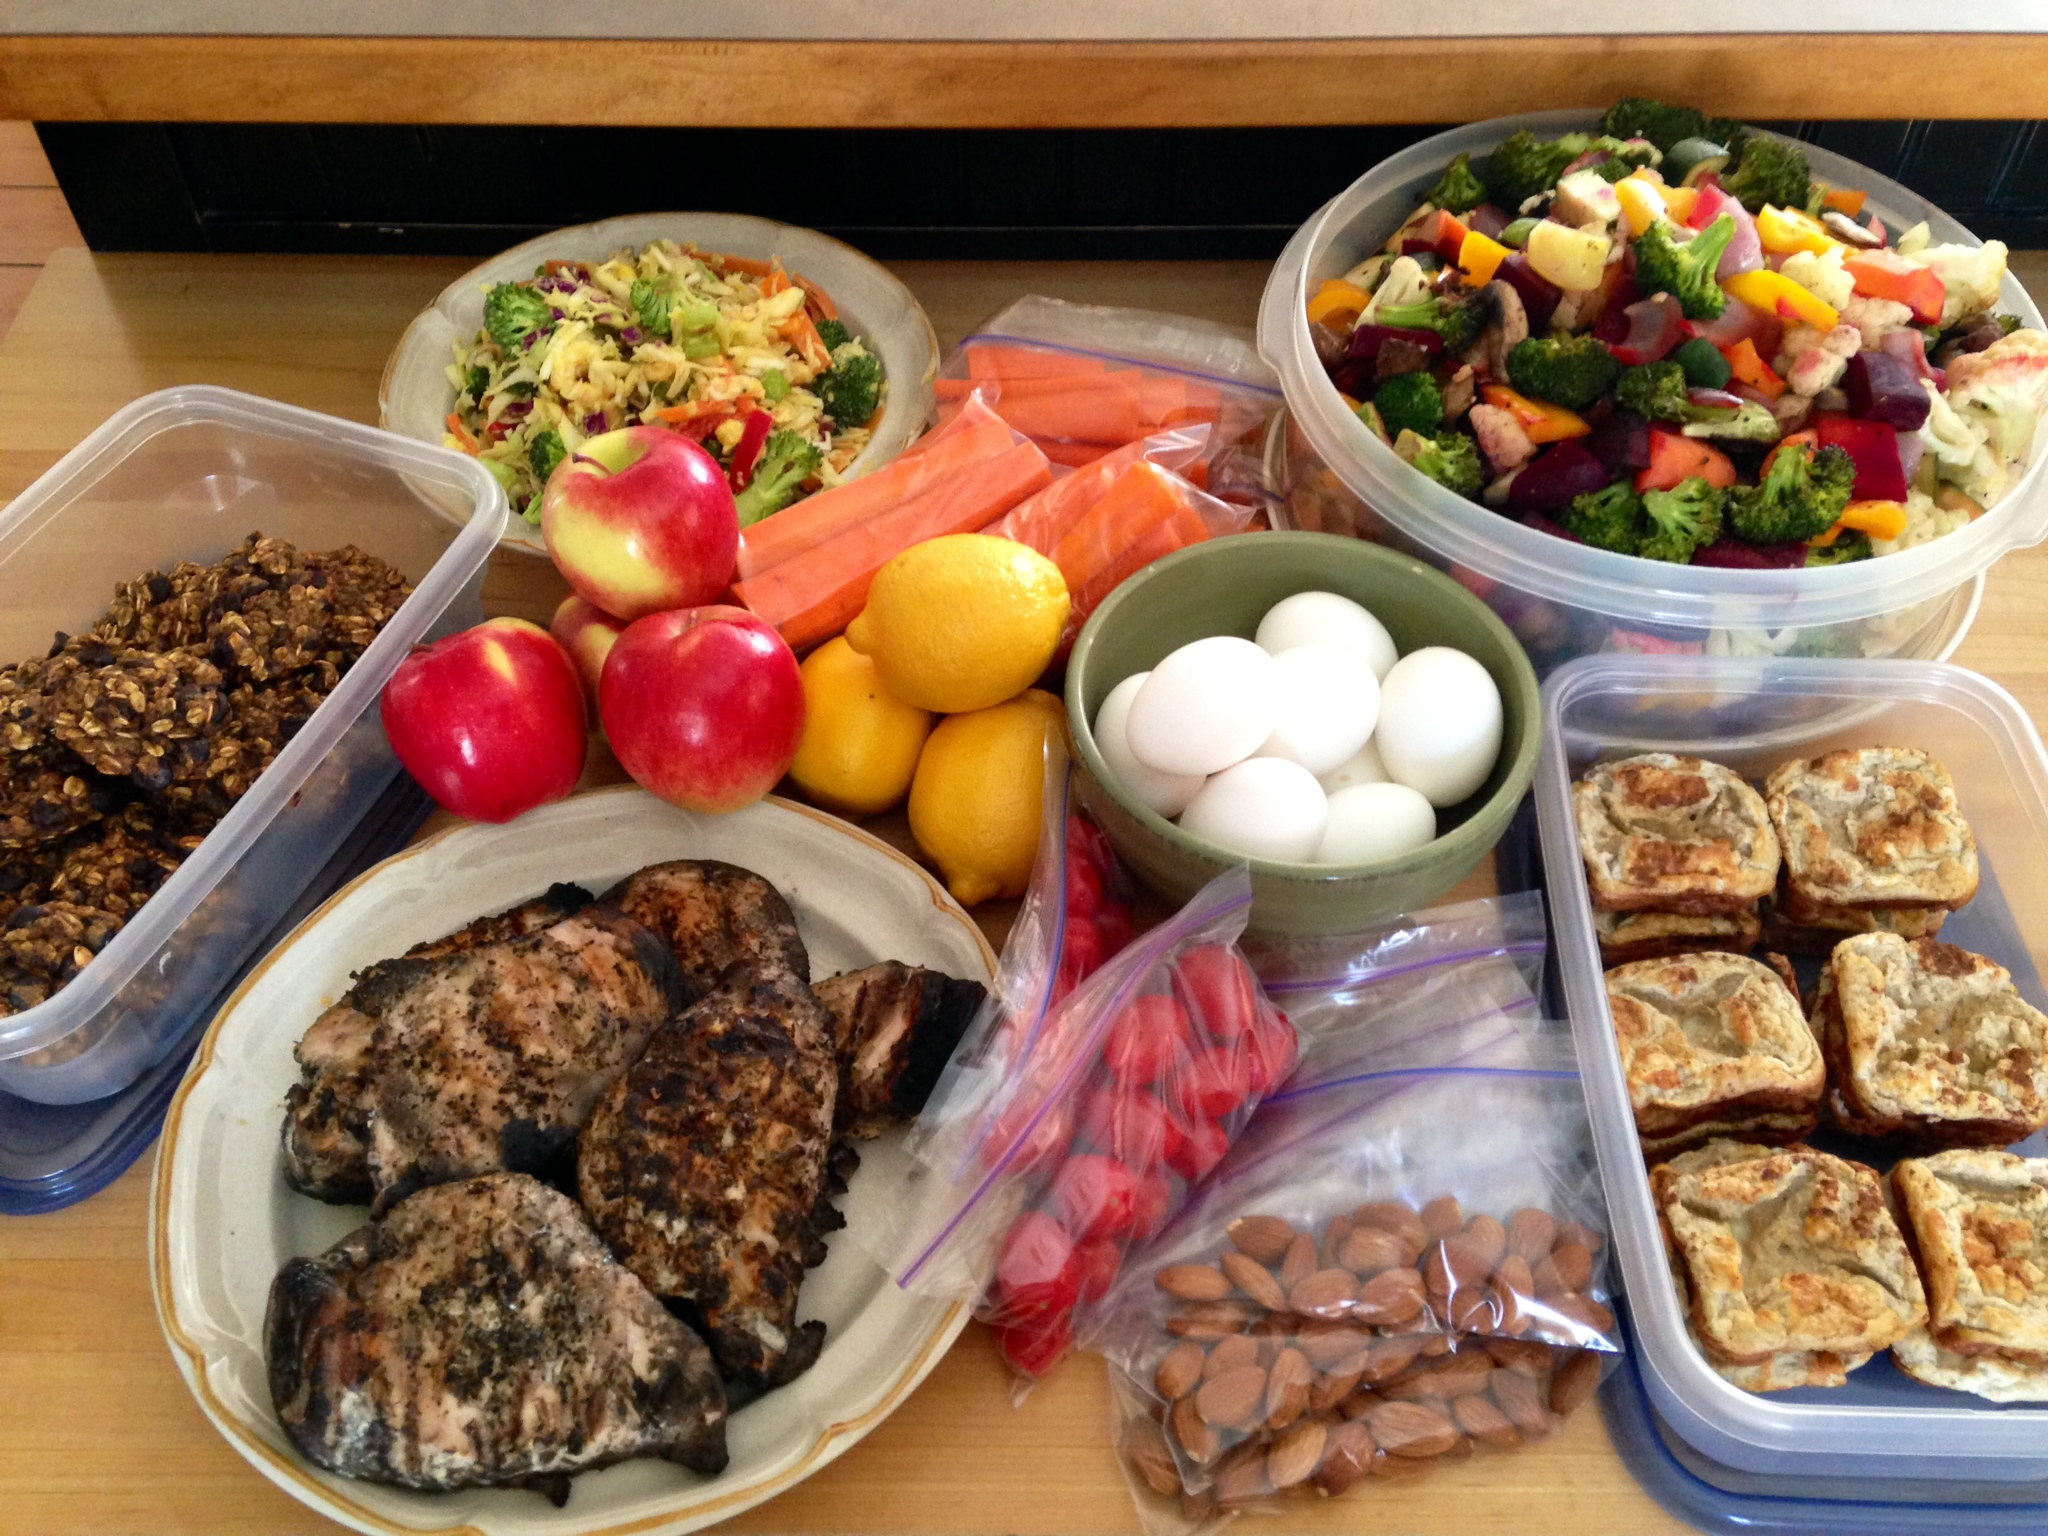 Home » Blog » Meal Prep